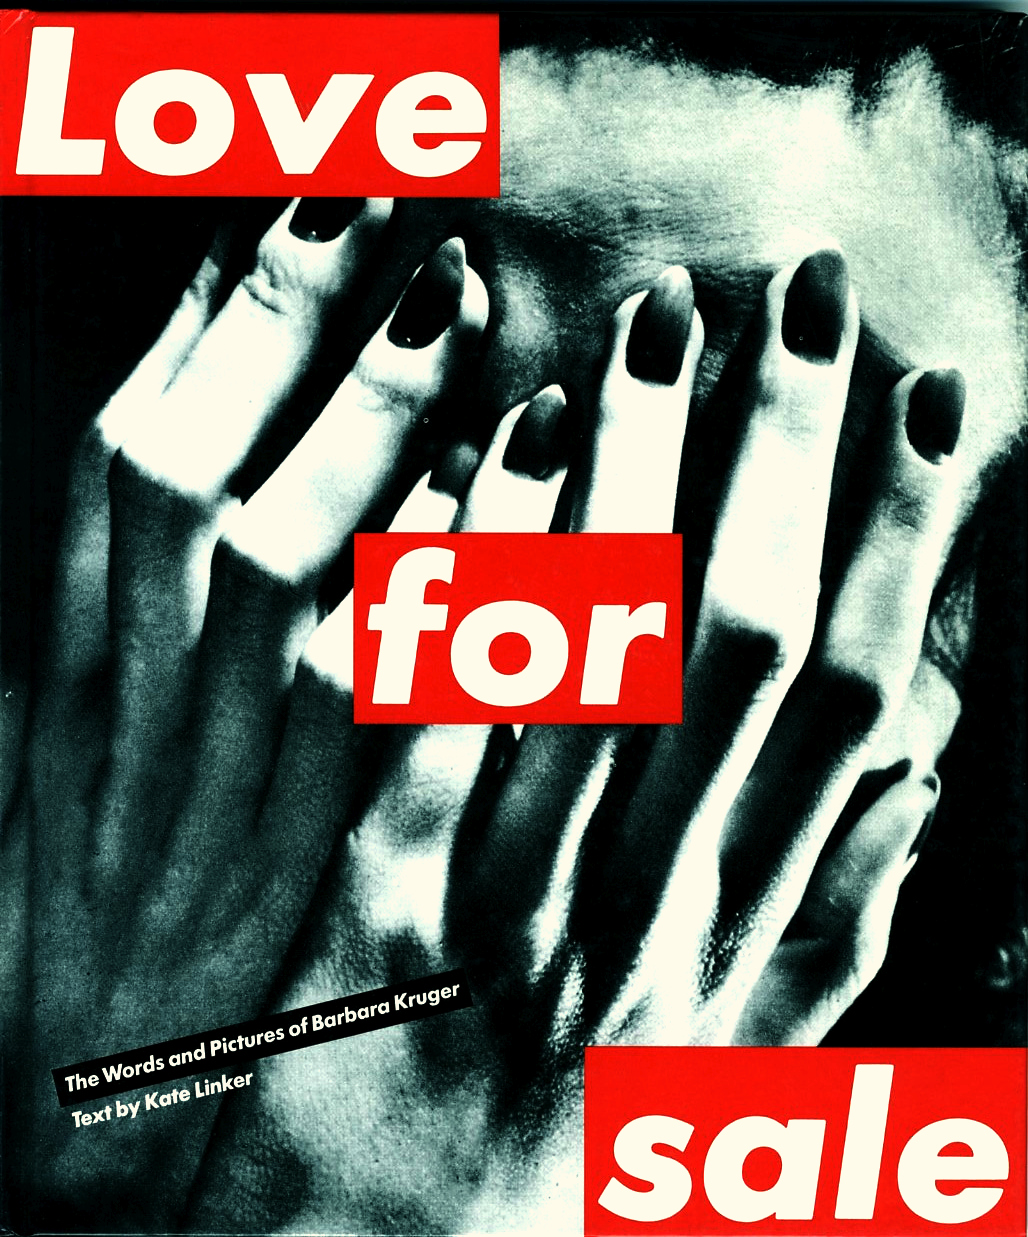 barbara_kruger_love_for_sale_godsavedadaism.jpg